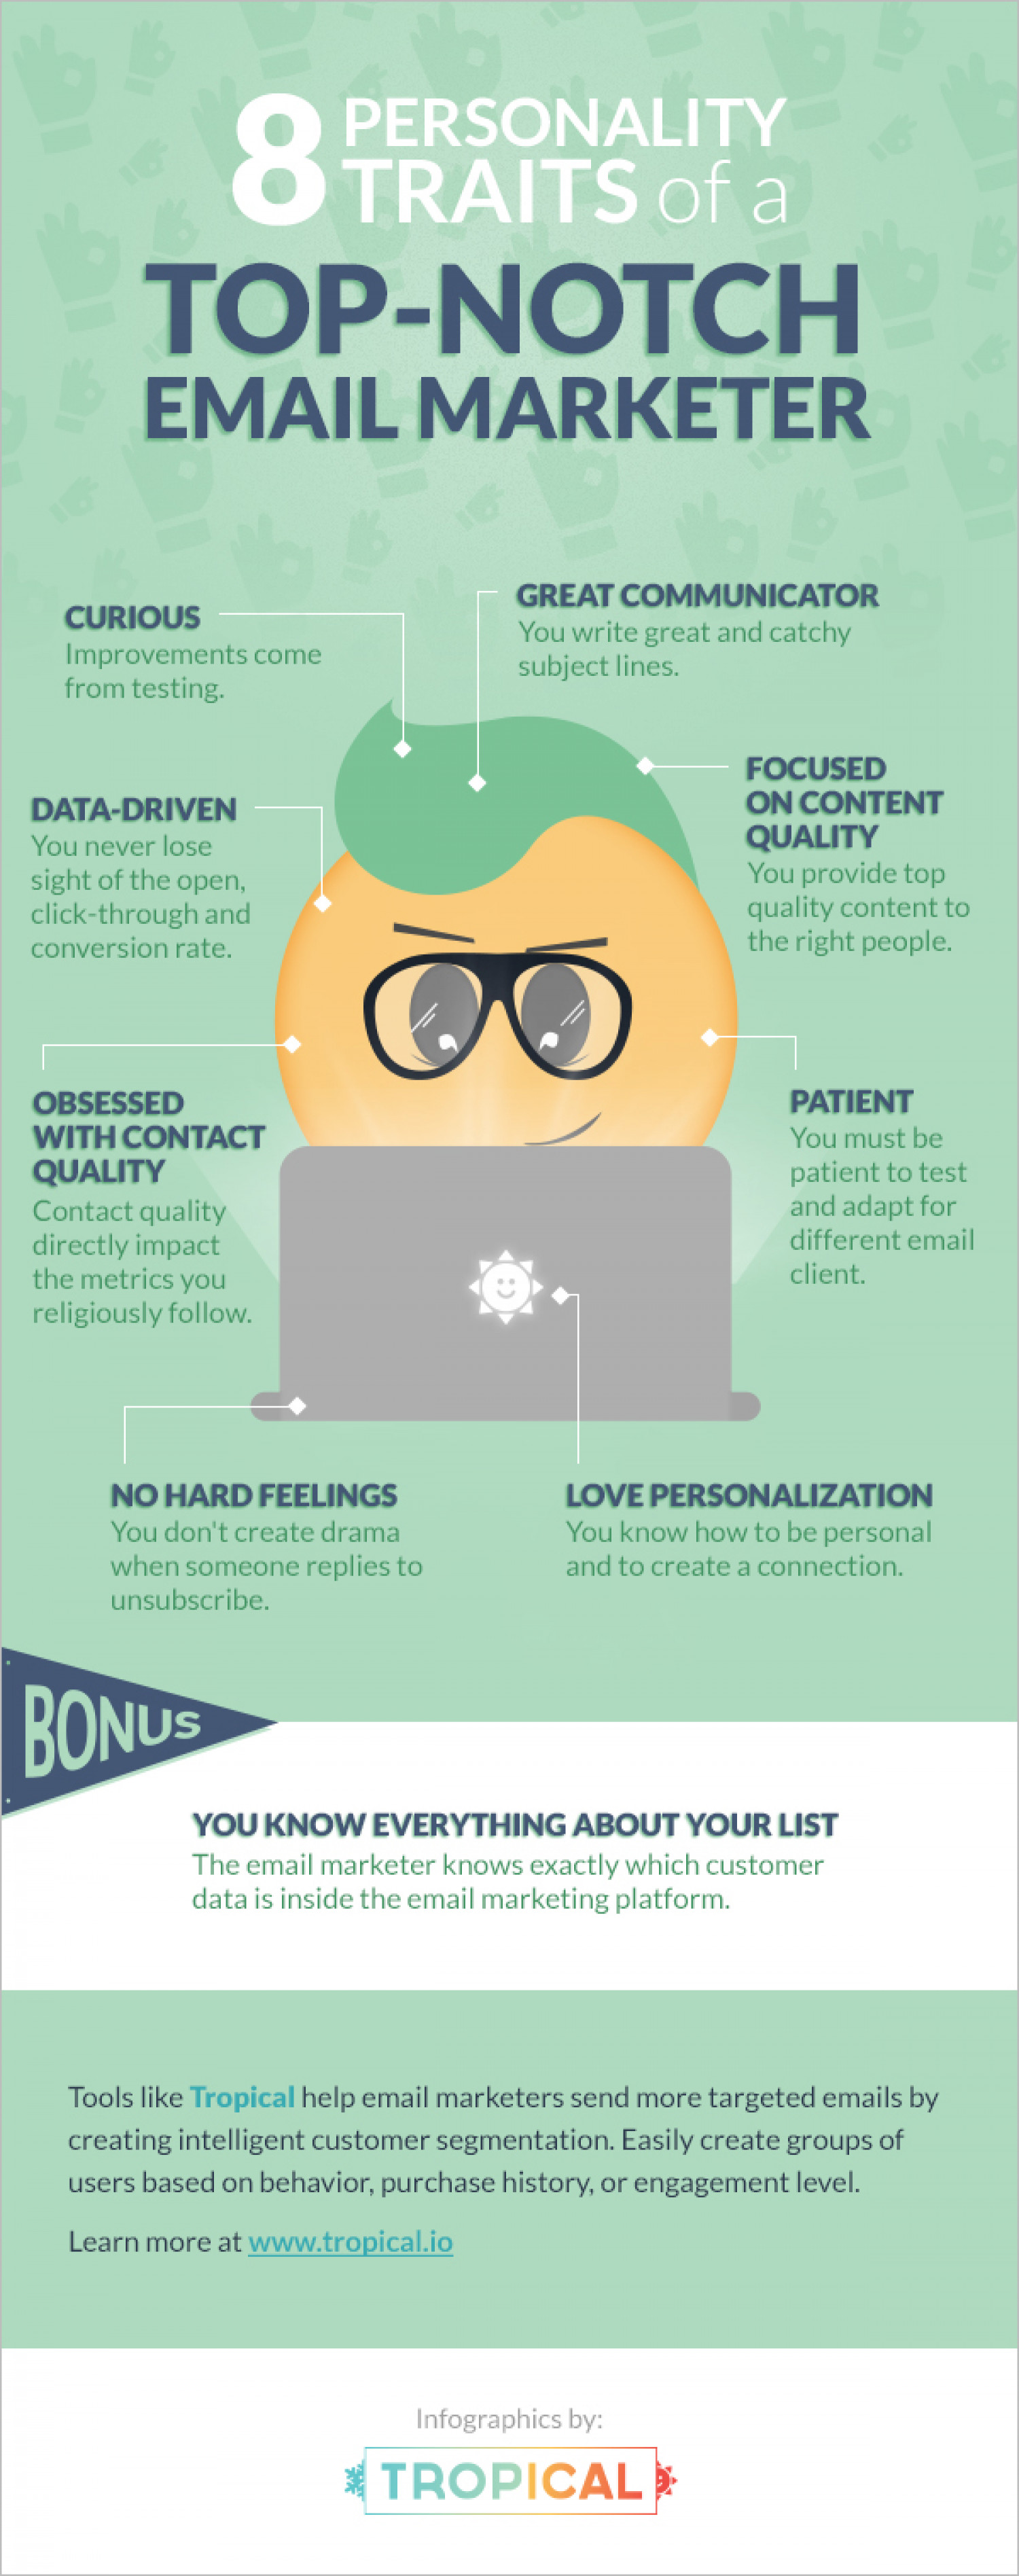 8 Personality Traits Of A Top-Notch Email Marketer Infographic